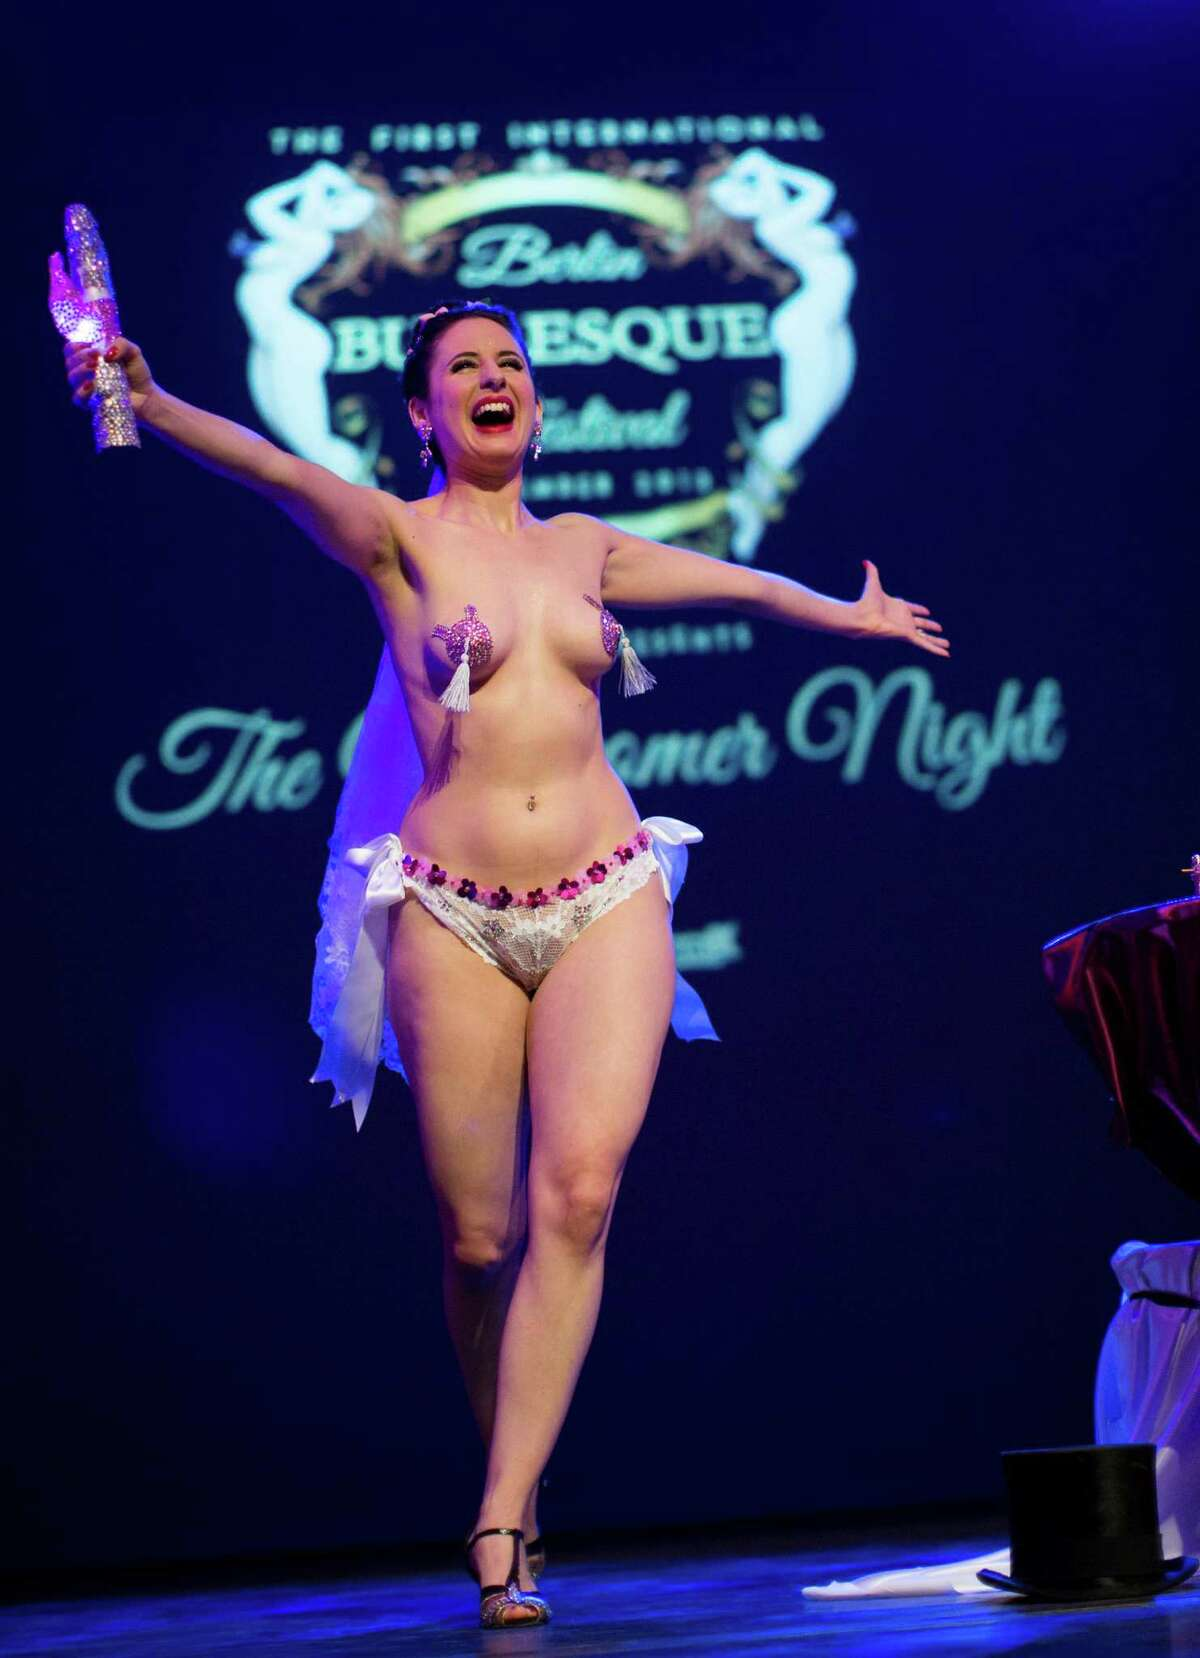 Burlesque artist Giddy Heights of Britain performs during the Newcomer Night of the first international Berlin Burlesque Festival in Berlin, Germany, Thursday, Sept. 19, 2013. The artists from overseas take part in the four-day festival which includes three different evening shows.